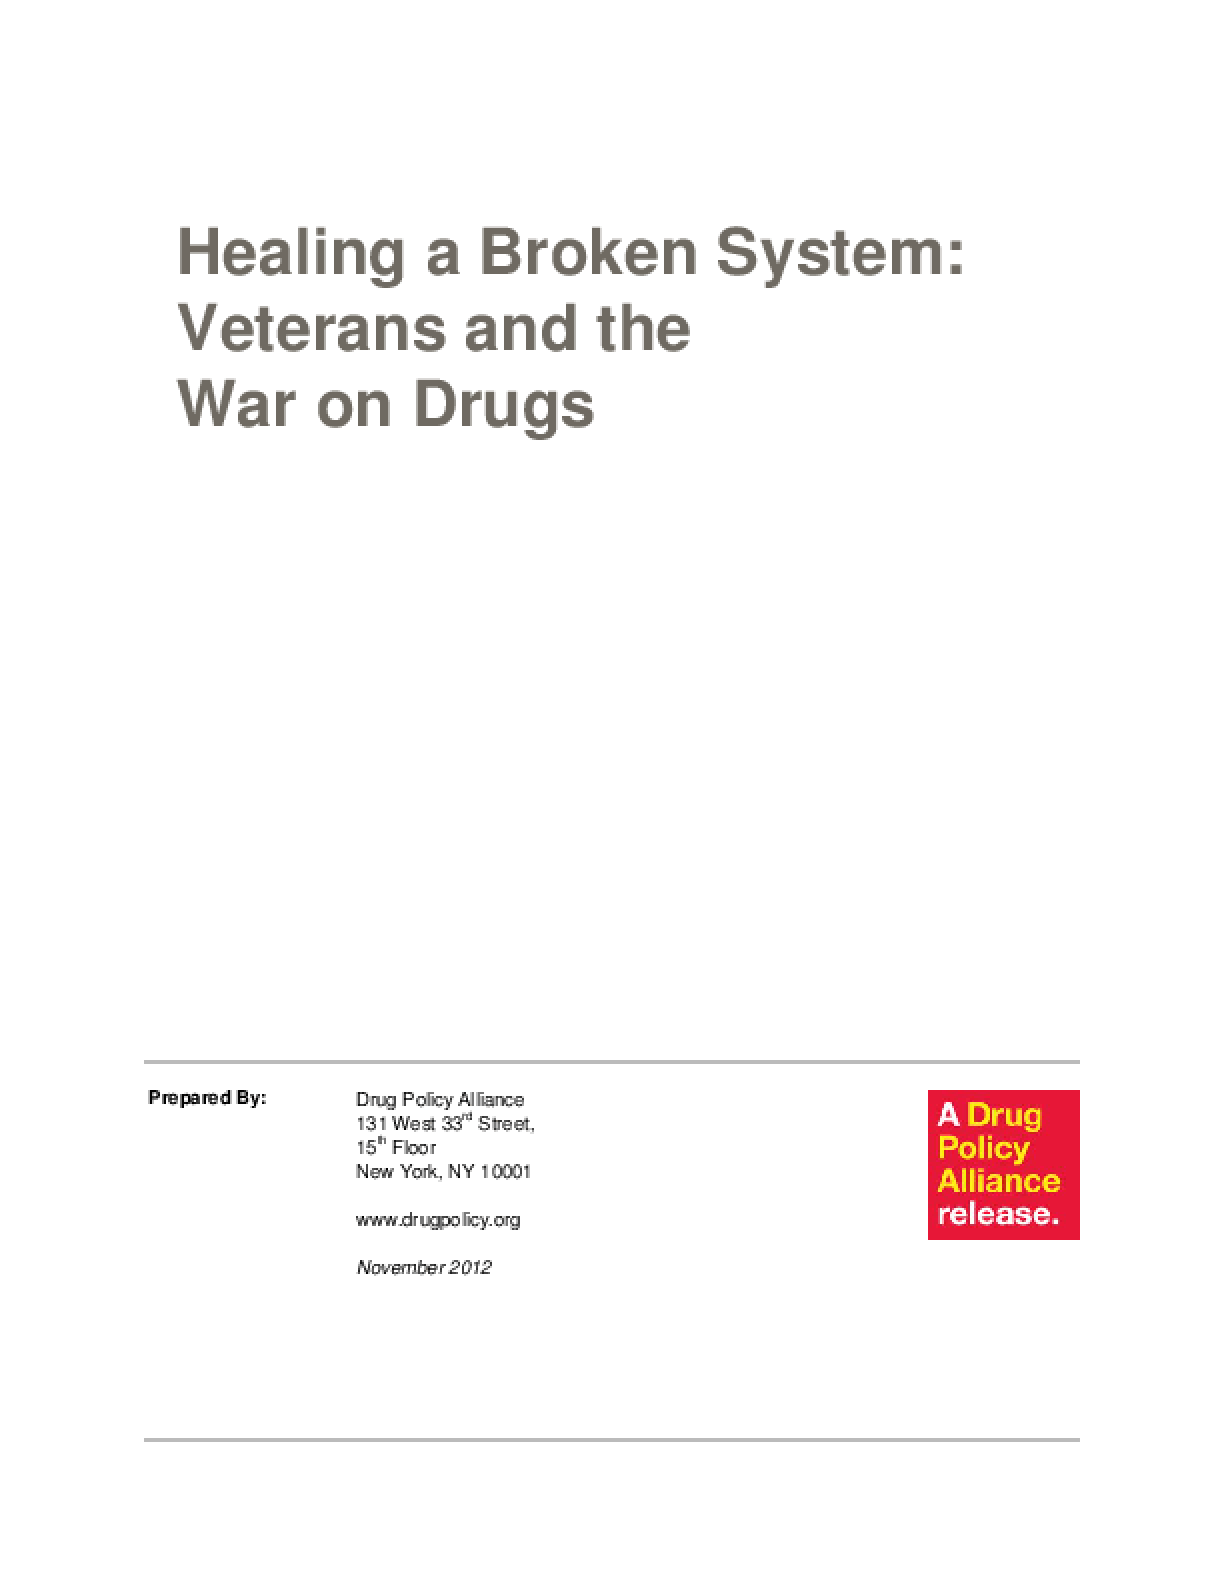 Healing a Broken System: Veterans and the War on Drugs